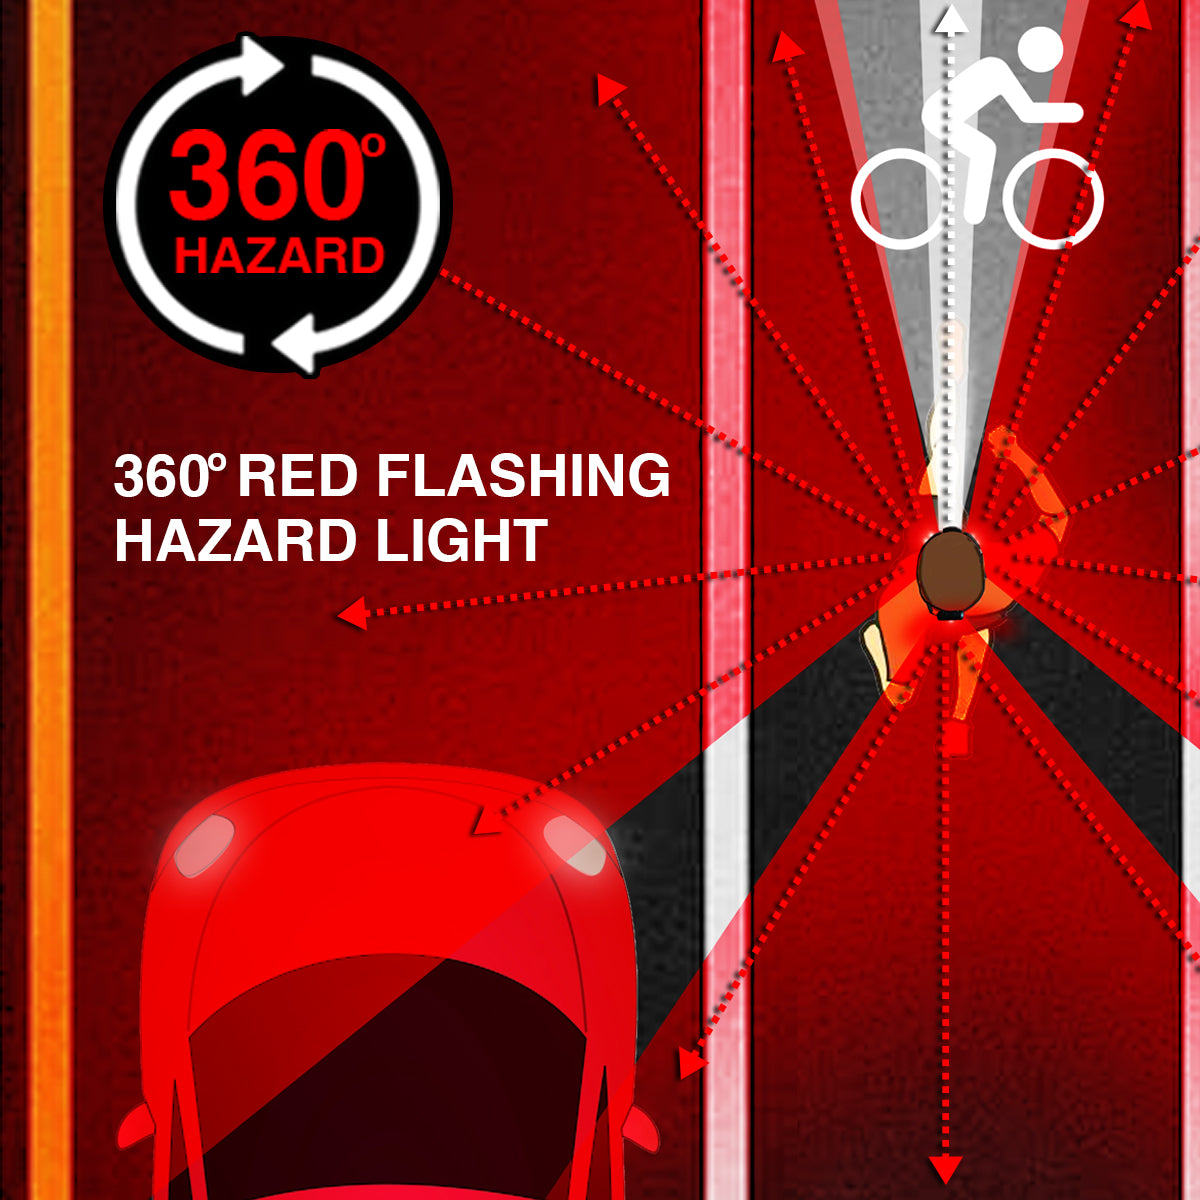 FLEXIT Headlamp PRO features red night vision LEDs